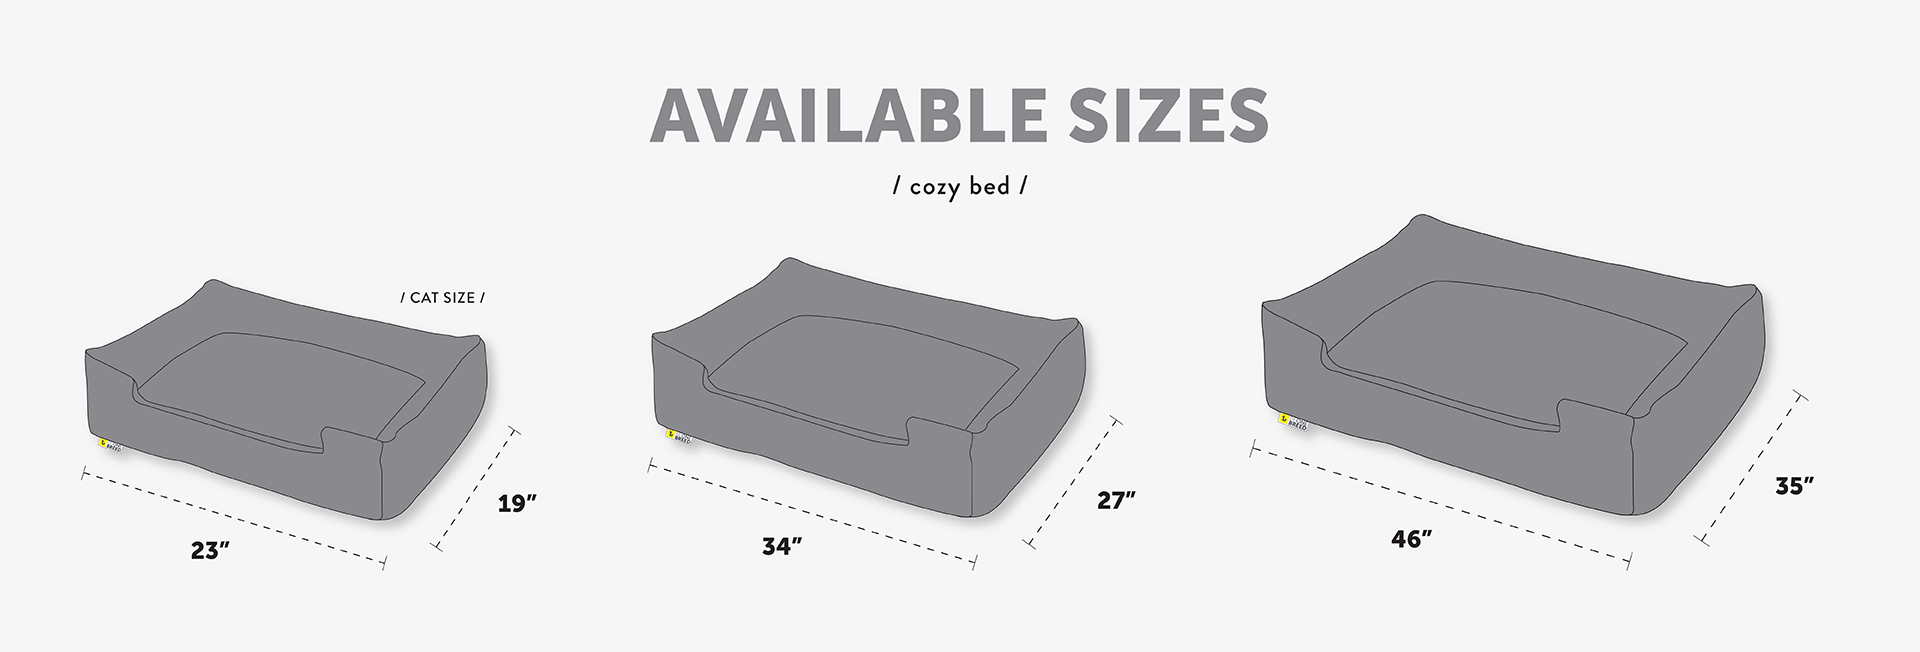 Size-cozy-bed-for-dogs-english